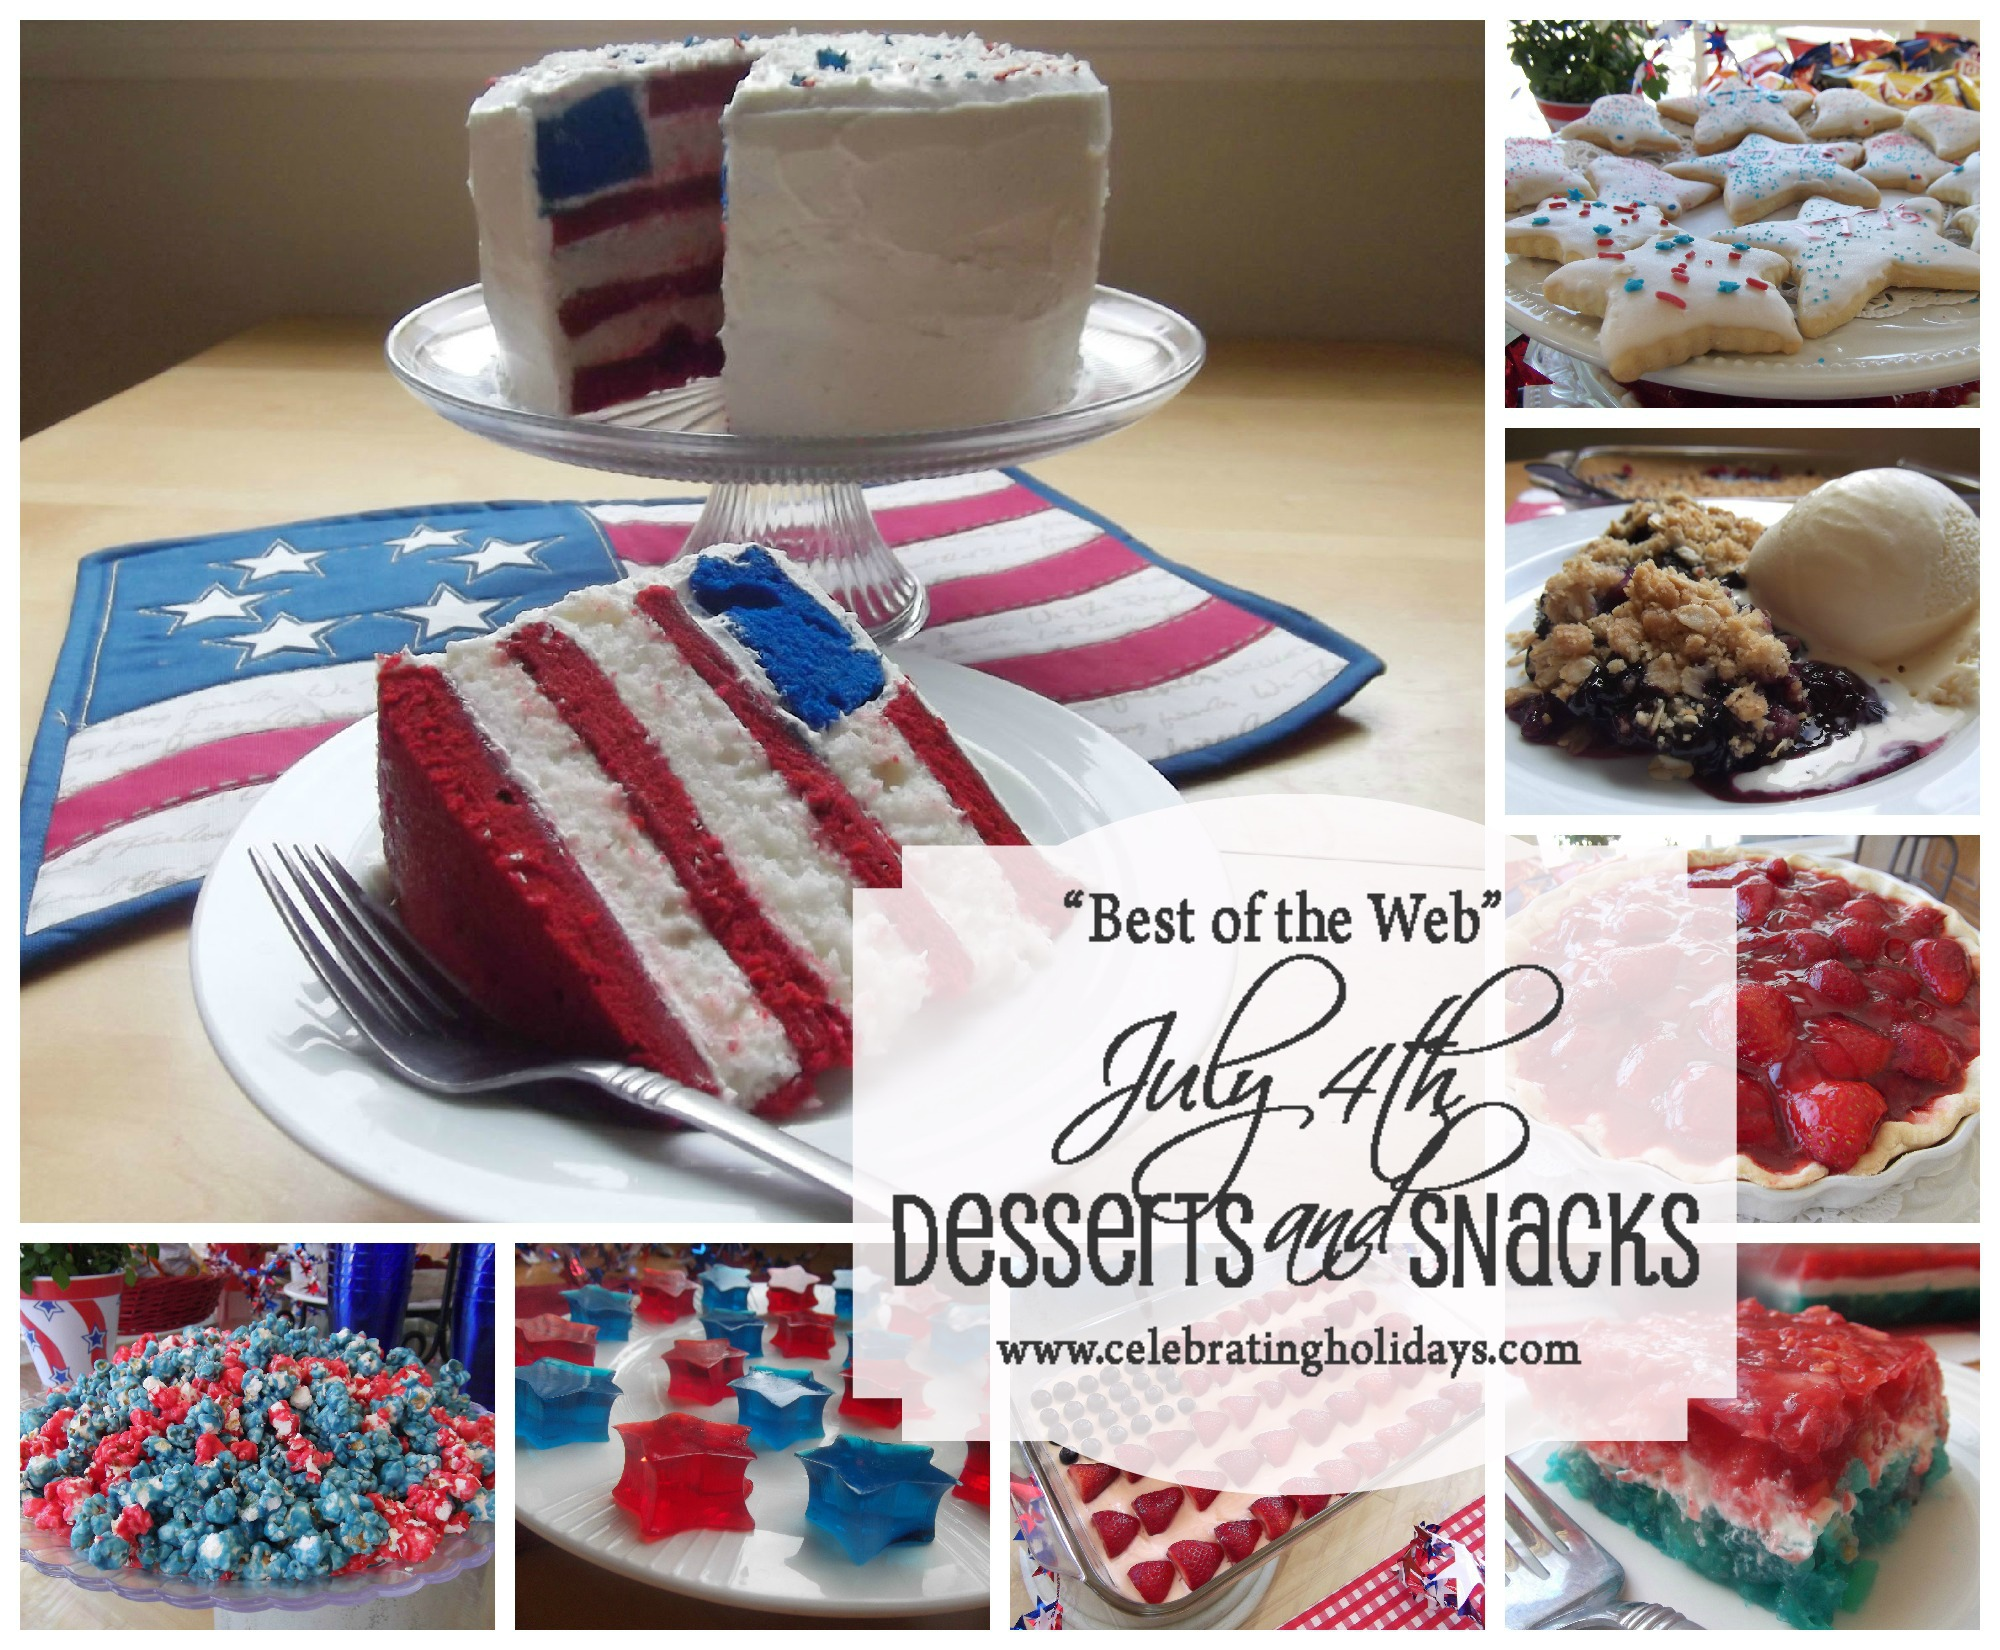 Best of the Web July 4th Dessert Ideas